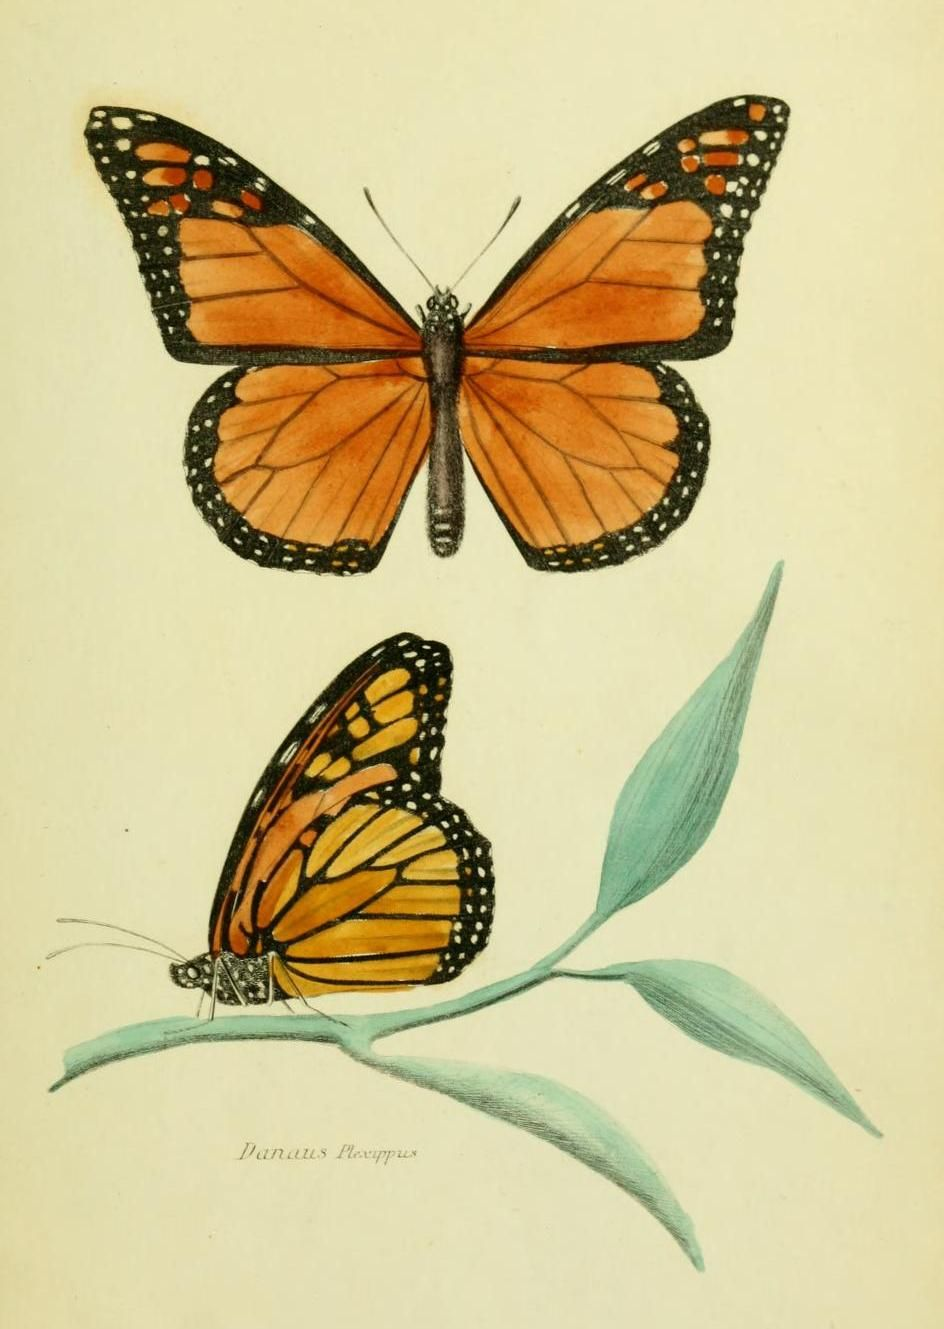 The Monarch Butterfly | Apothecary | Pinterest | Mariposas, Dibujo ...